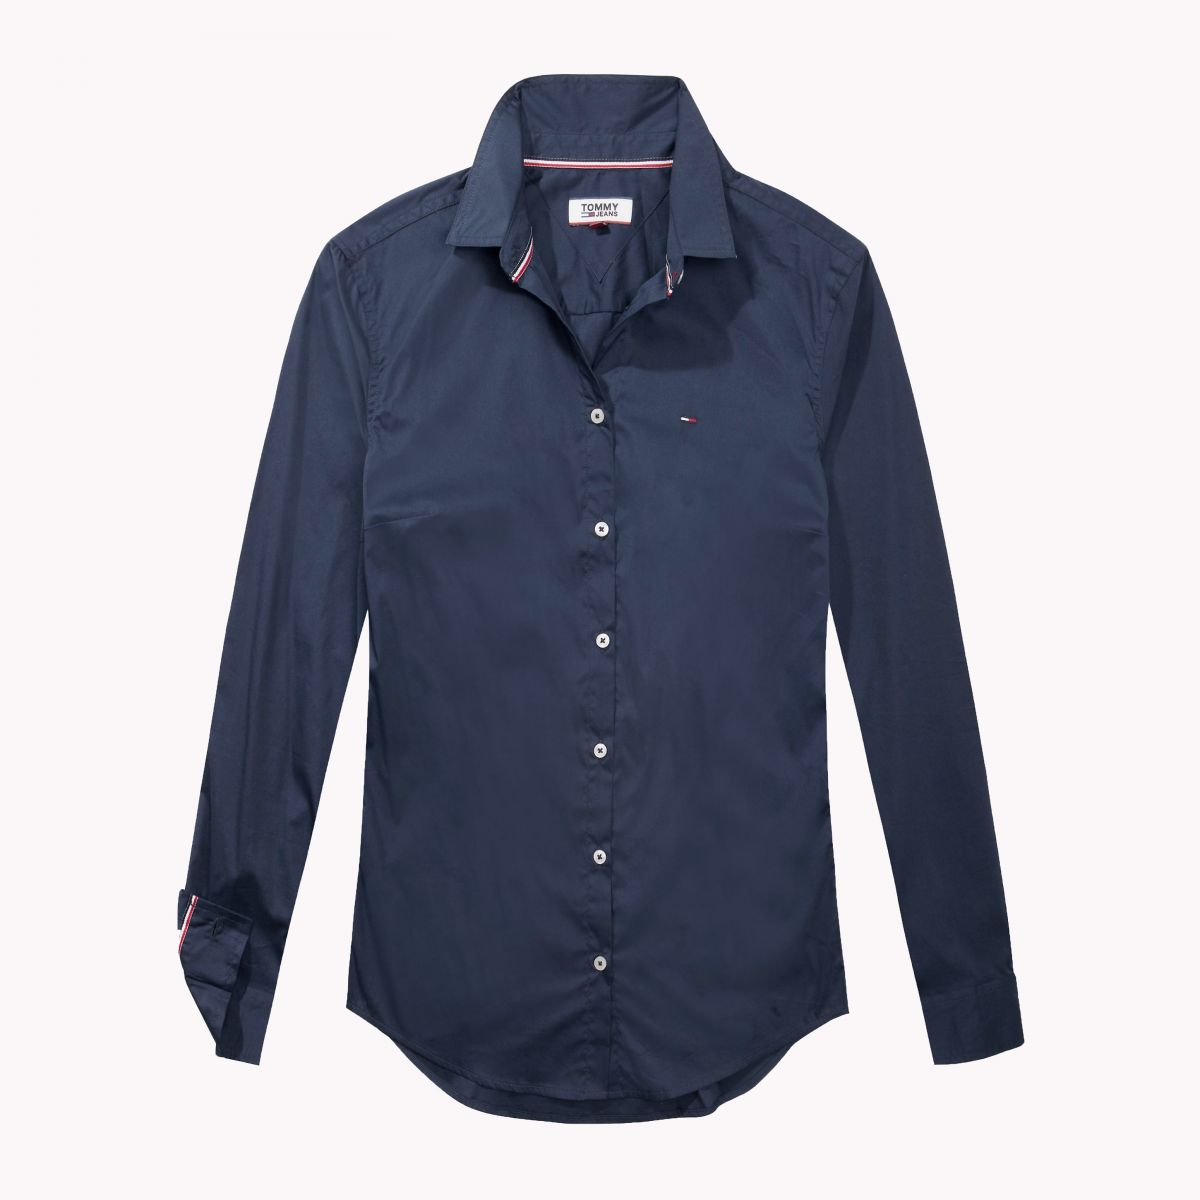 CAMISA MANGA LARGA TJW ORIGINAL STRETCH SHIRT DRESS BLUES